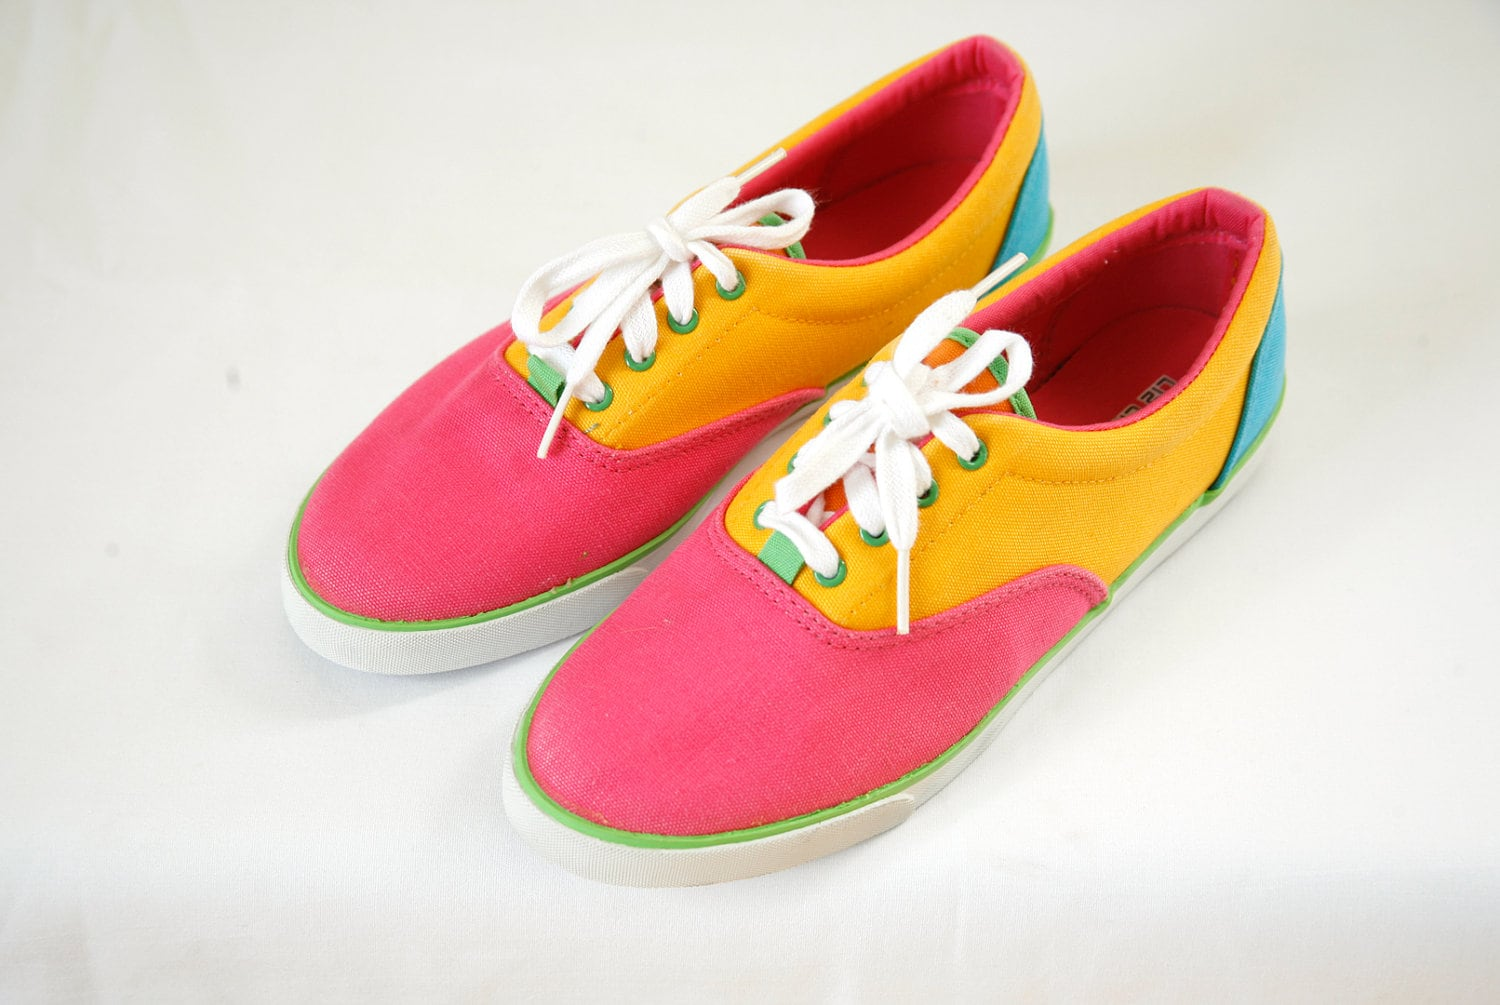 Canvas Neon Shoes Shoes Colors 18 Orange 18 Available up Sneakers Womens Lace E7wvRx7q Member Engagement & Governance Alice Nègre is an independent consultant working on different themes linked to the development of inclusive financial systems, especially microfinance and .